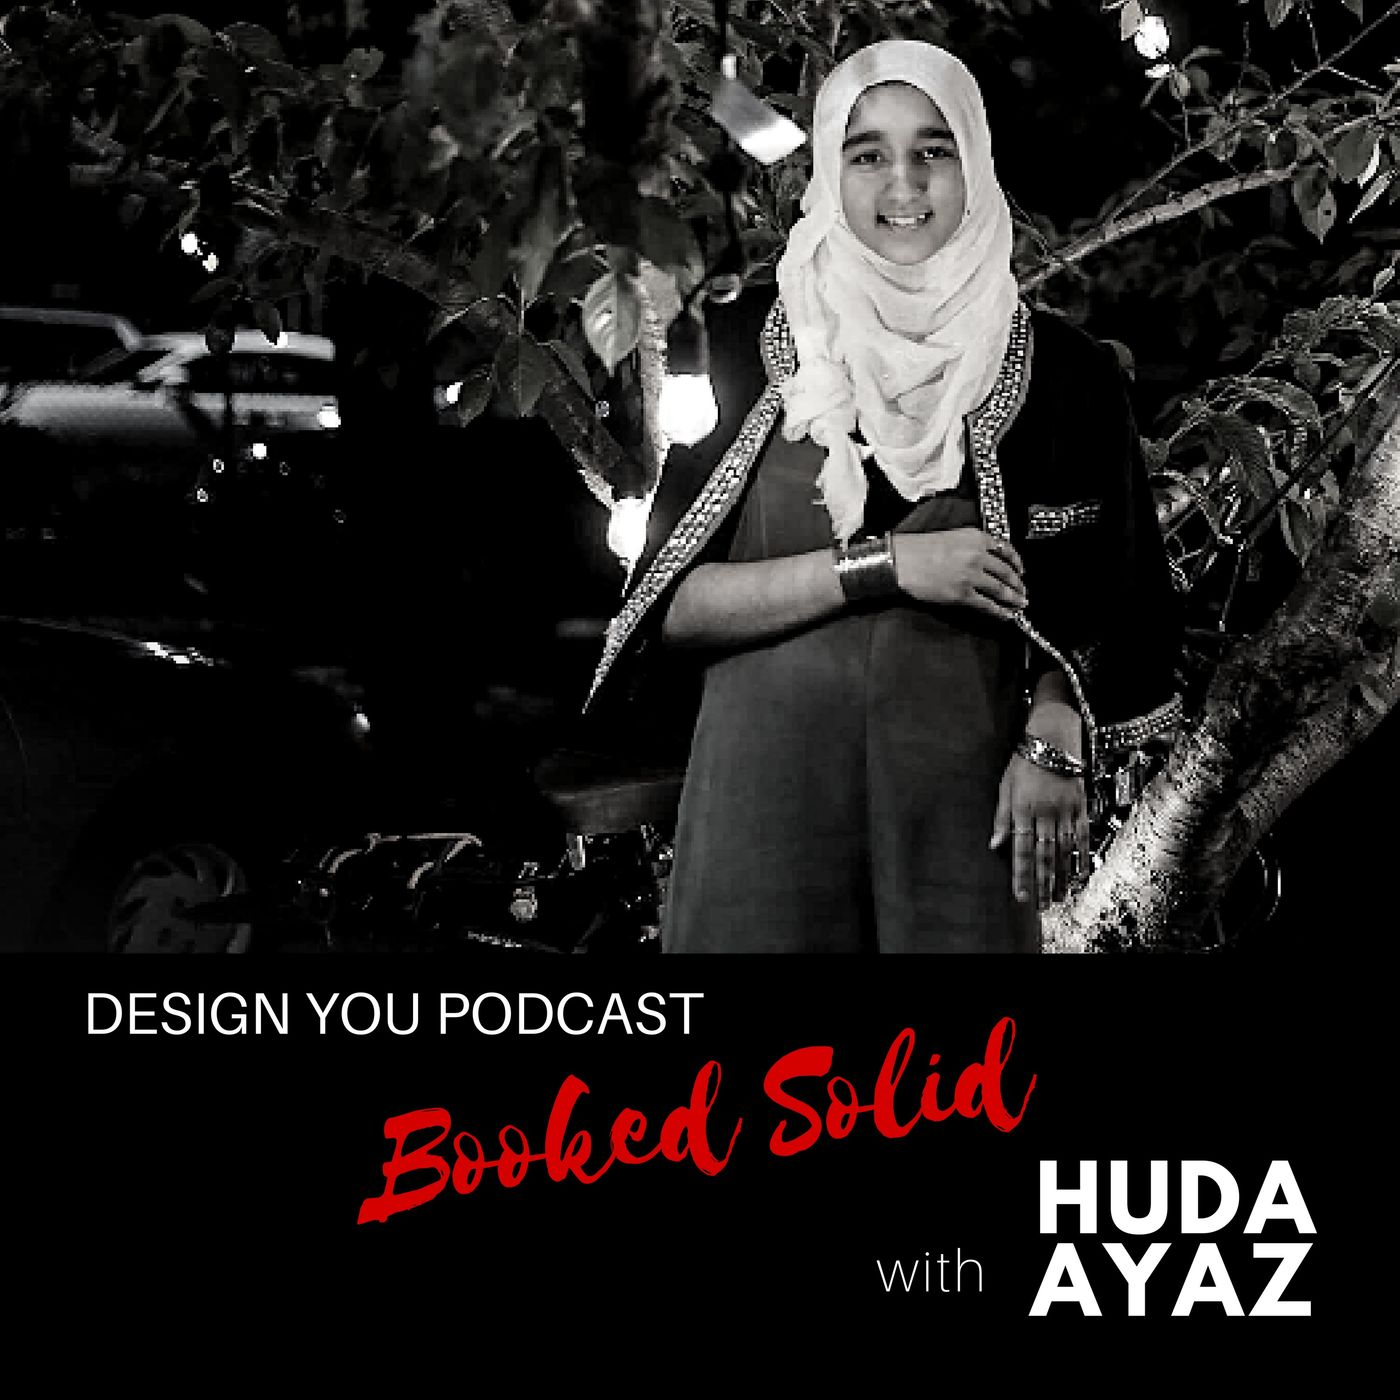 EP 039 – Booked Solid with Huda Ayaz